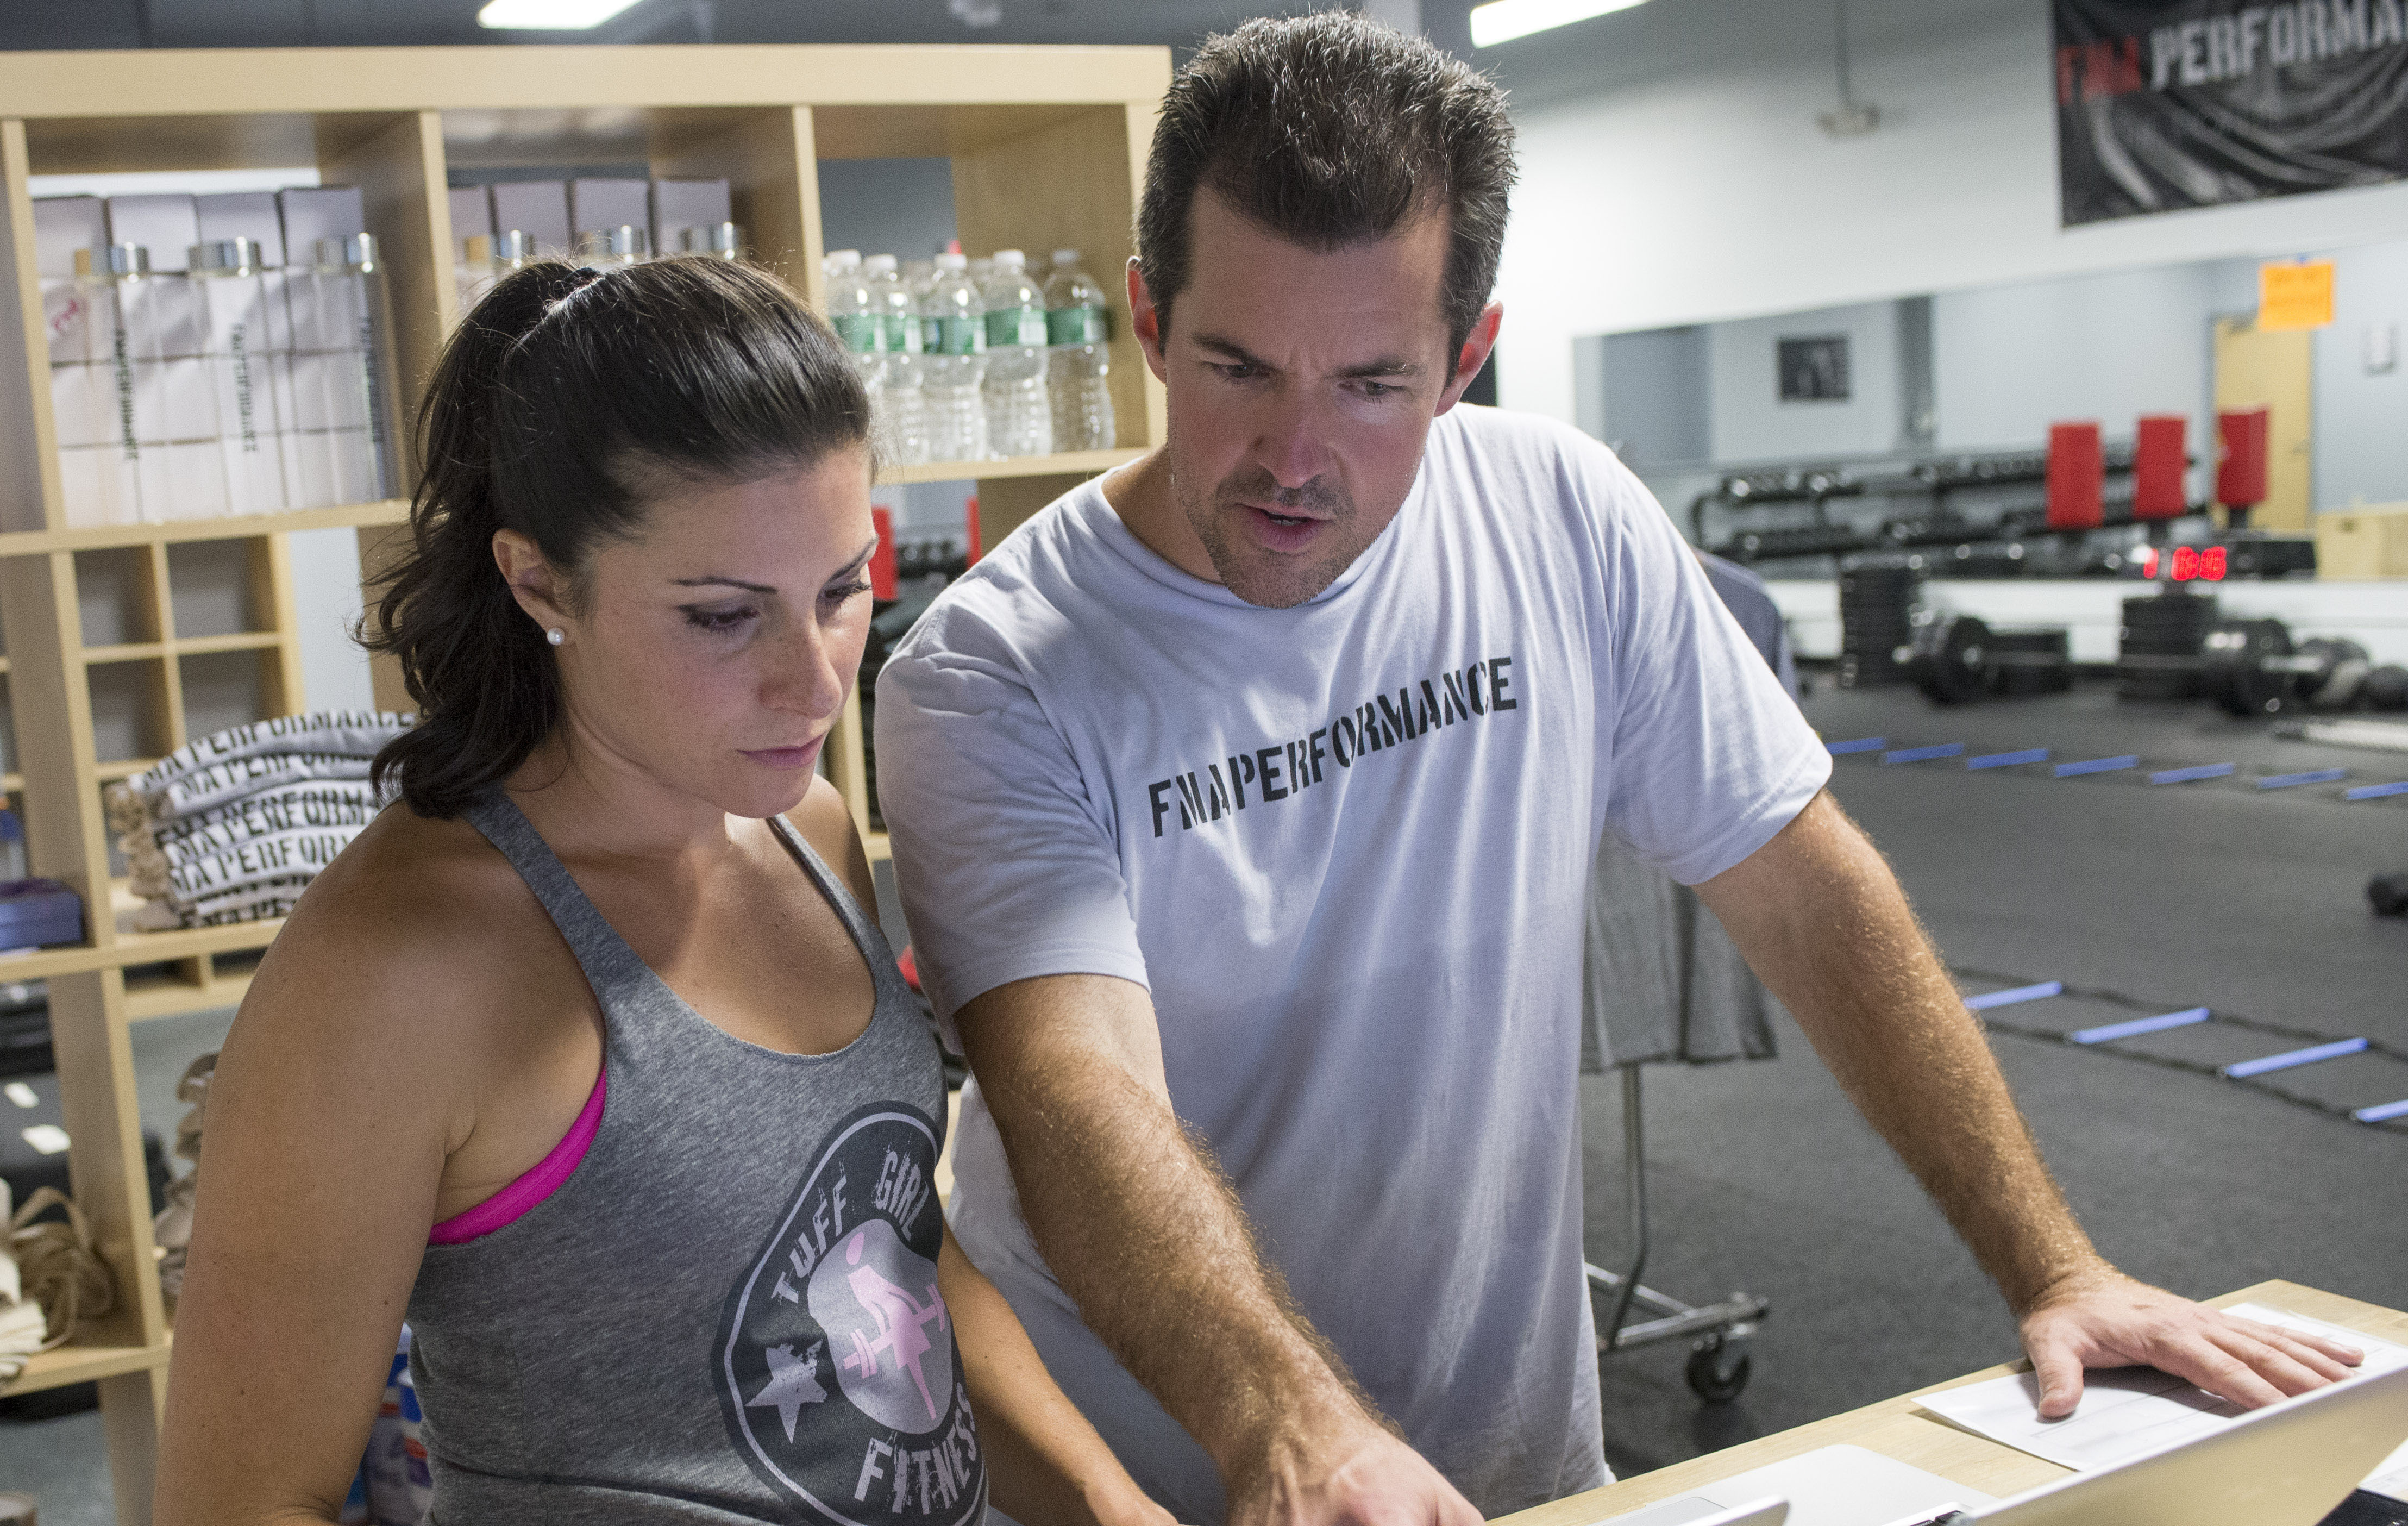 Christa and Mike Doran, coaches and owners of Tuff Girl Fitness in Hamden, Conn. (Photo: Business Wire)